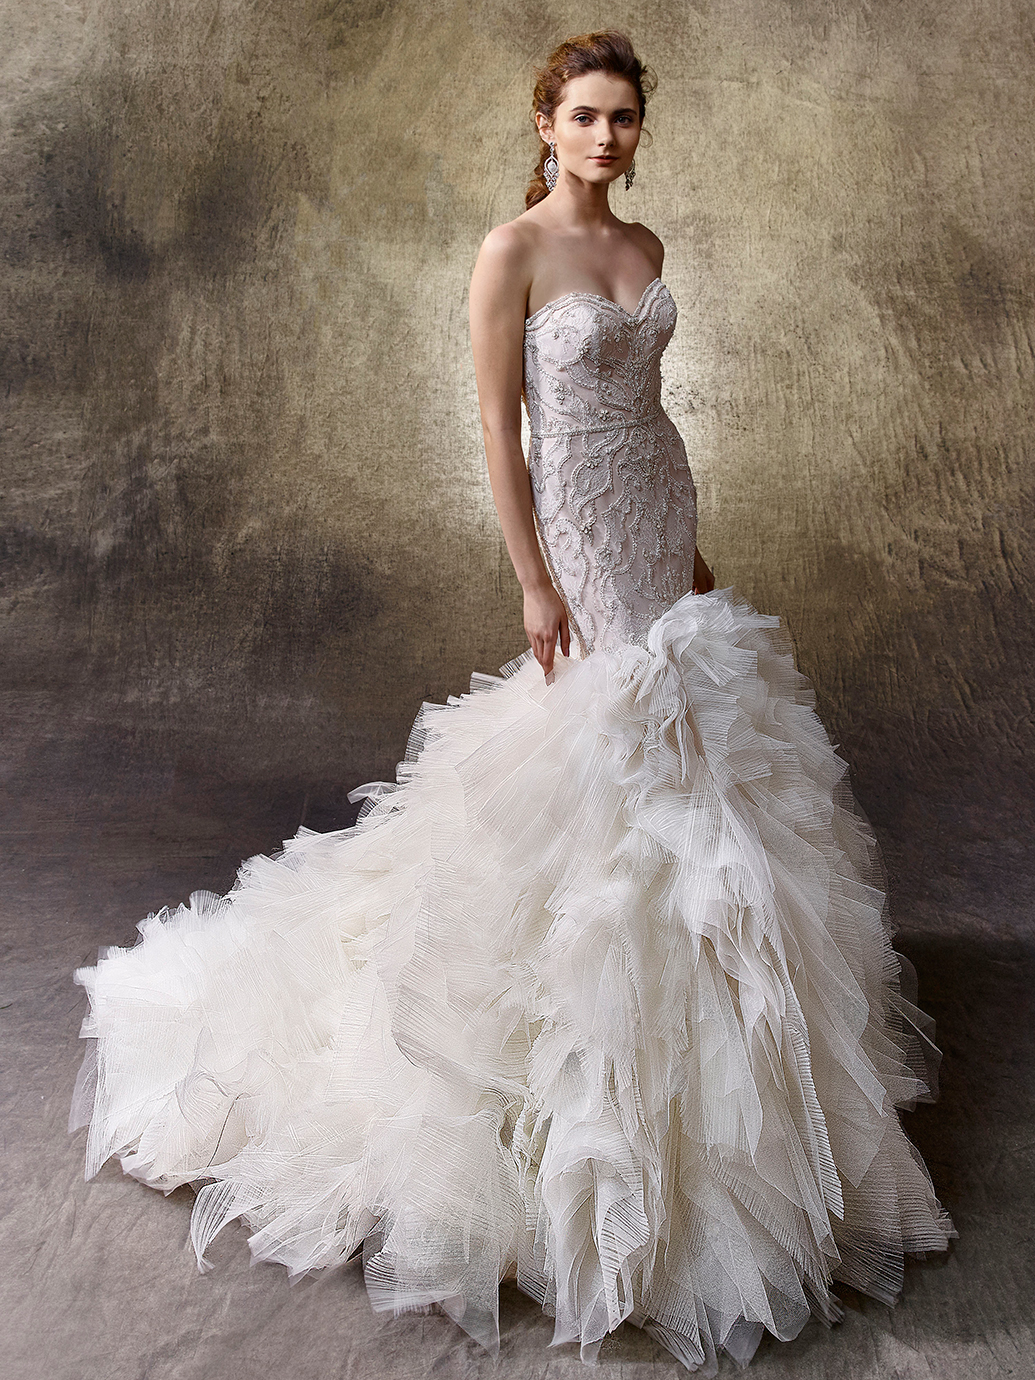 Wedding Dress Designers Archives - Chryssie\'s Bridal